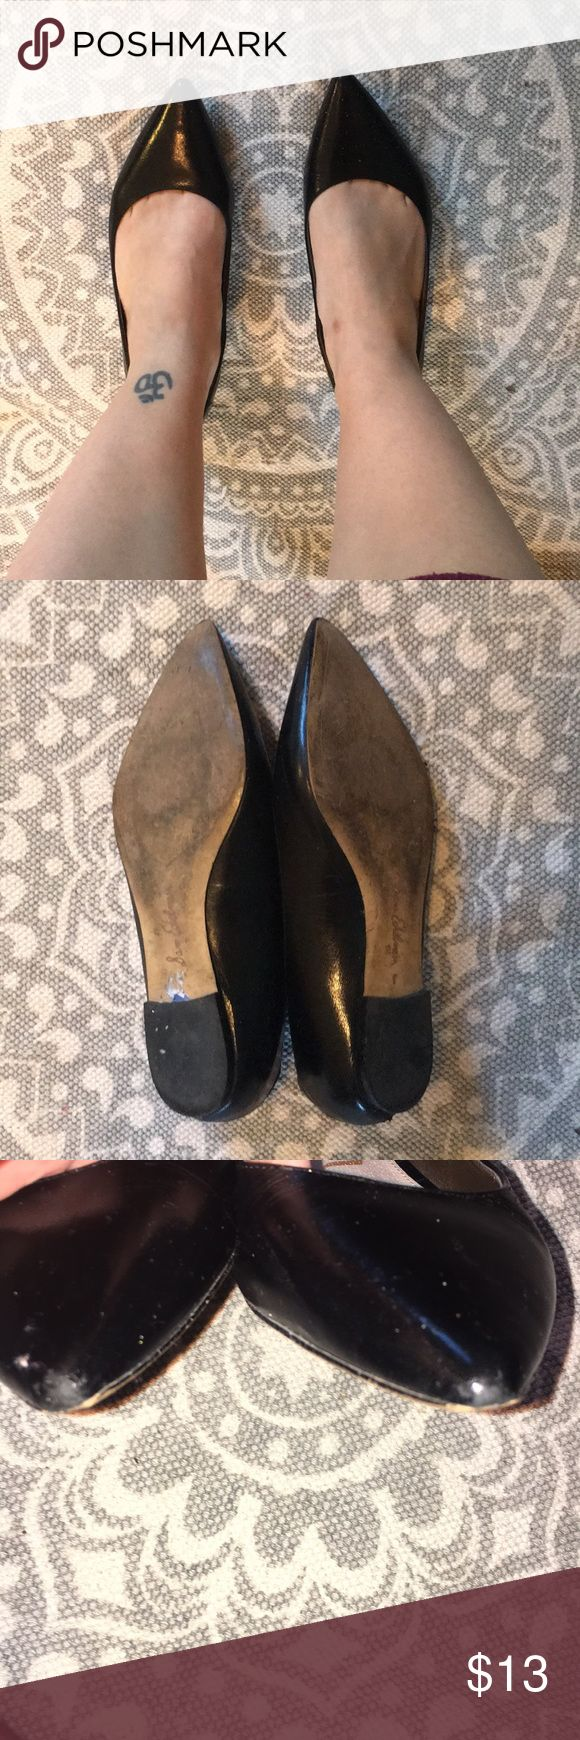 Sam Edelman Black Flats Sam Edelman Black Flats Slight scuff on left toe, points have some barely visible wear Purchase at TJ Maxx Sam Edelman Shoes Flats & Loafers